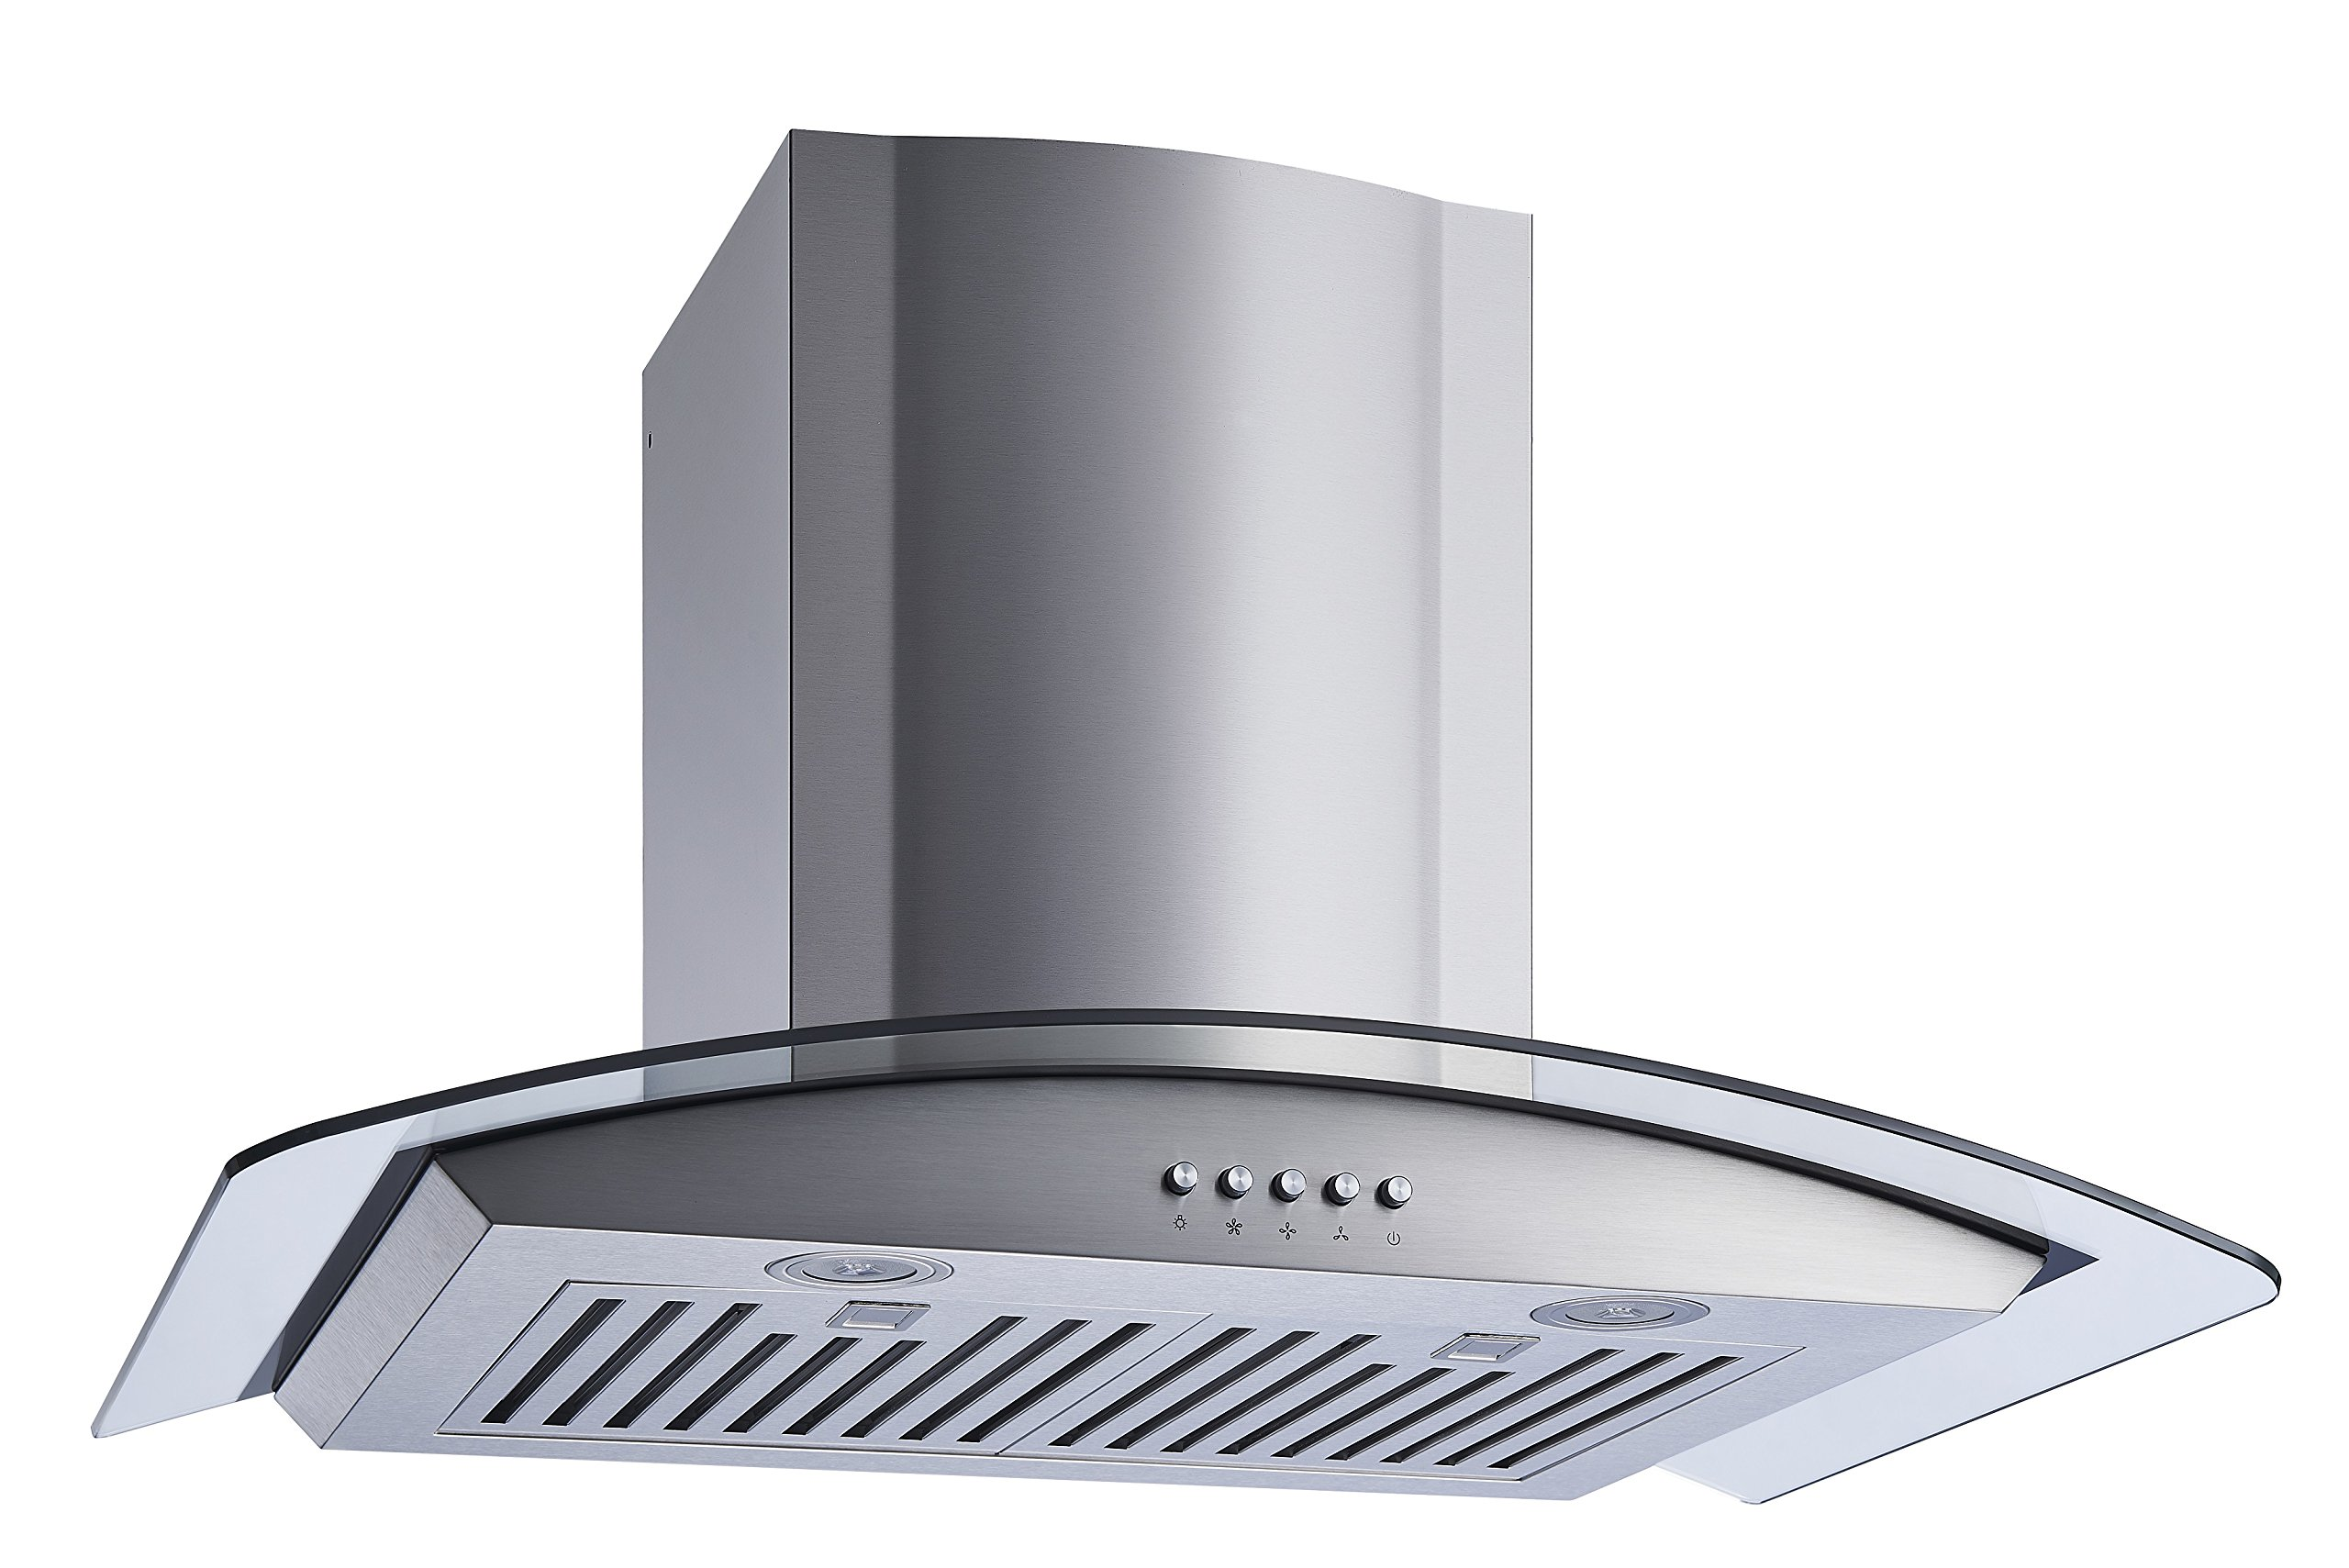 Winflo New 30'' Convertible Stainless Steel/Tempered Glass Wall Mount Range Hood with Stainless Steel Baffle filters, Ultra bright LED lights and Push Button 3 Speed Control